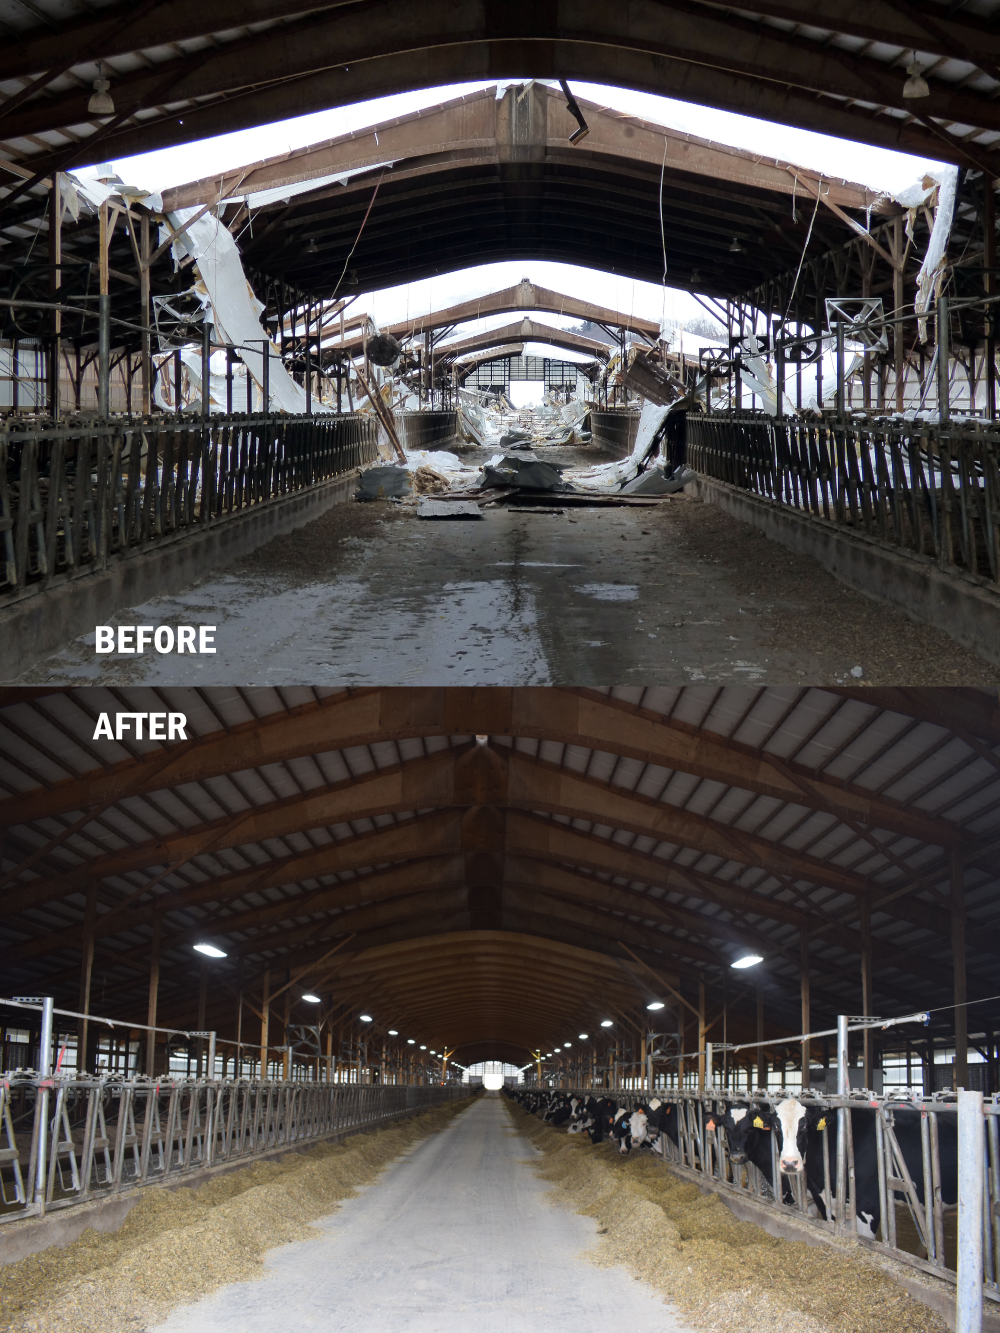 "Two photos taken from inside are side by side, with the top image reading ""BEFORE"" in white letters and the lower image reading ""AFTER"". The top image shows a collapsed roof and severe damage to the barn. The bottom image shows a functional roof and in-use barn with cows."